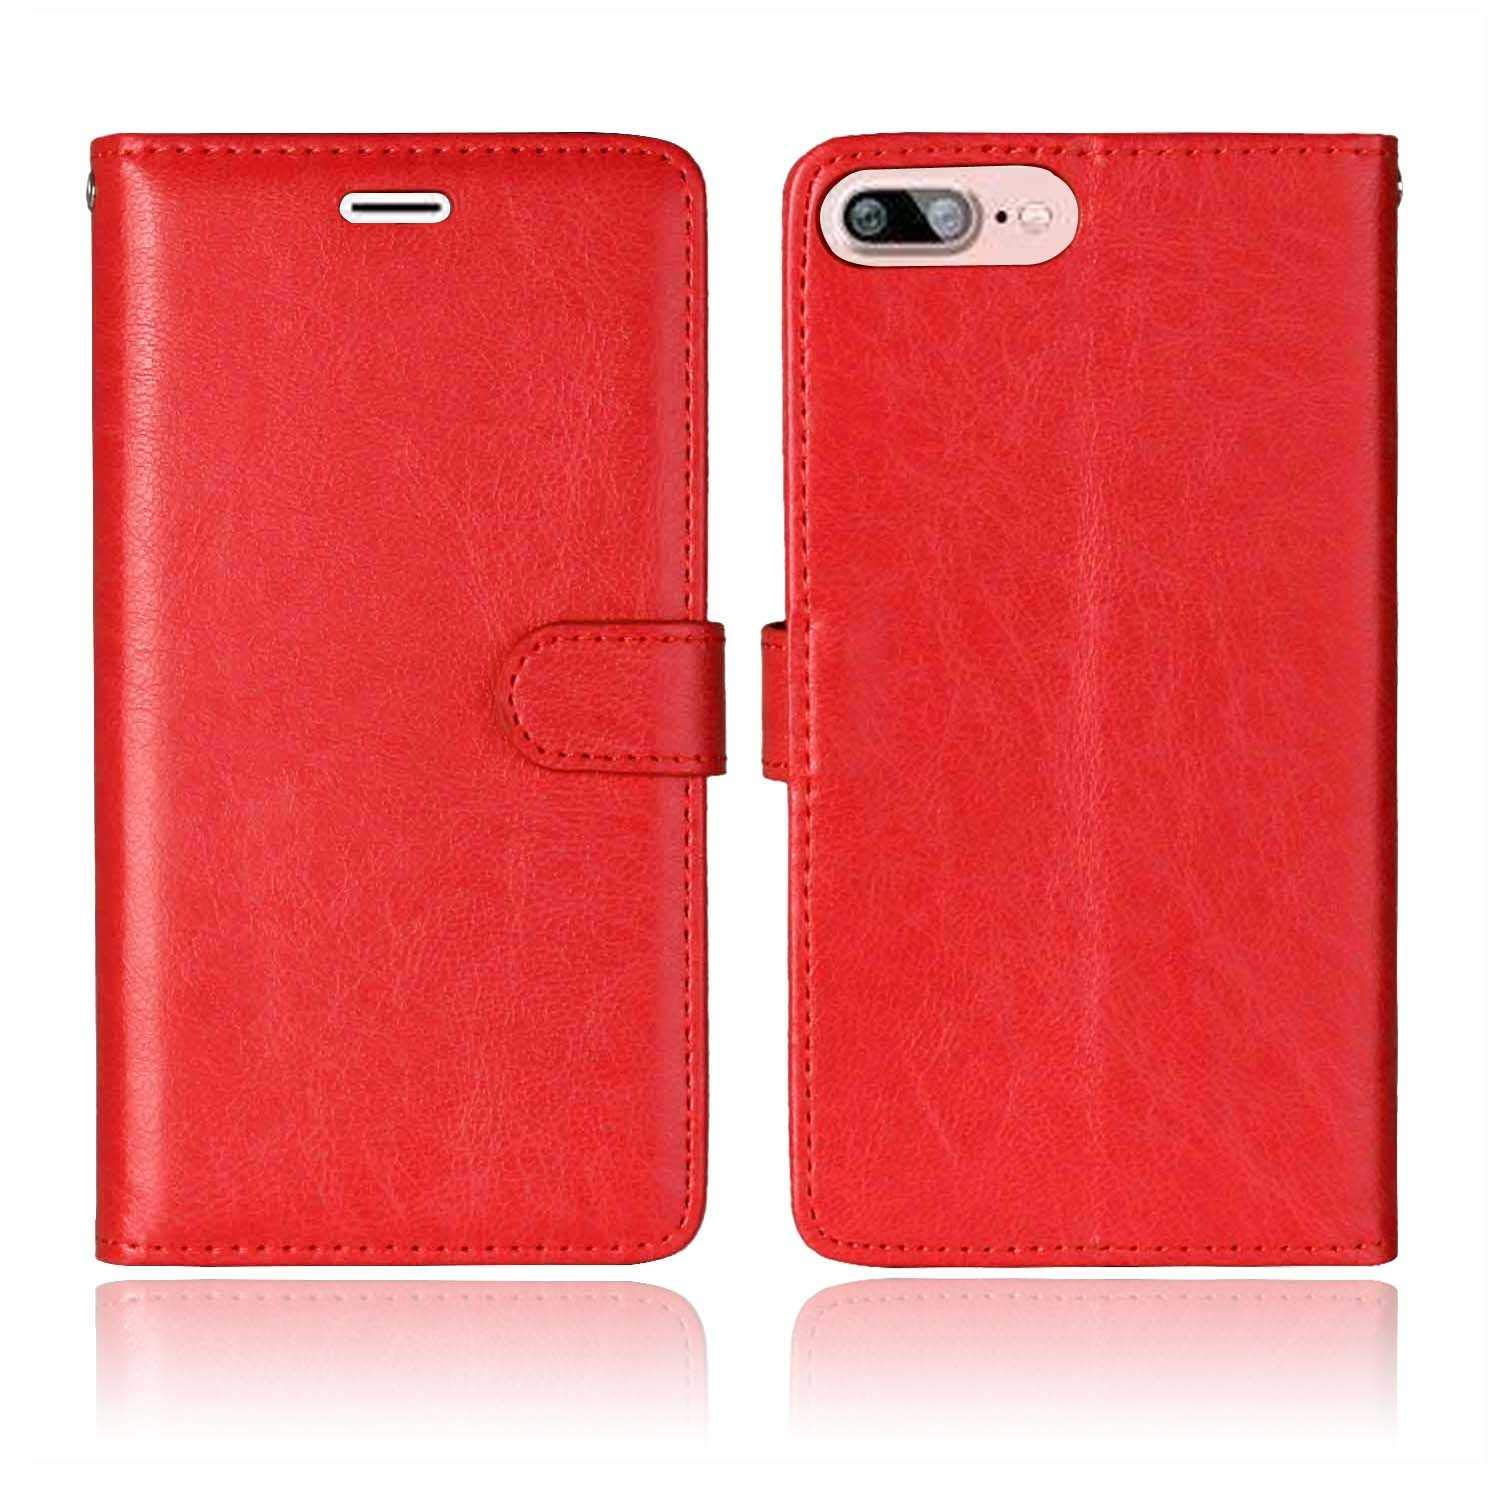 CAXPRO iPhone 7 Plus/iPhone 8 Plus Case, Shockproof Wallet Cover for Apple iPhone 7 Plus/iPhone 8 Plus, Slim Leather Notebook Style Case with Soft TPU Inner Bumper, Red by CAXPRO